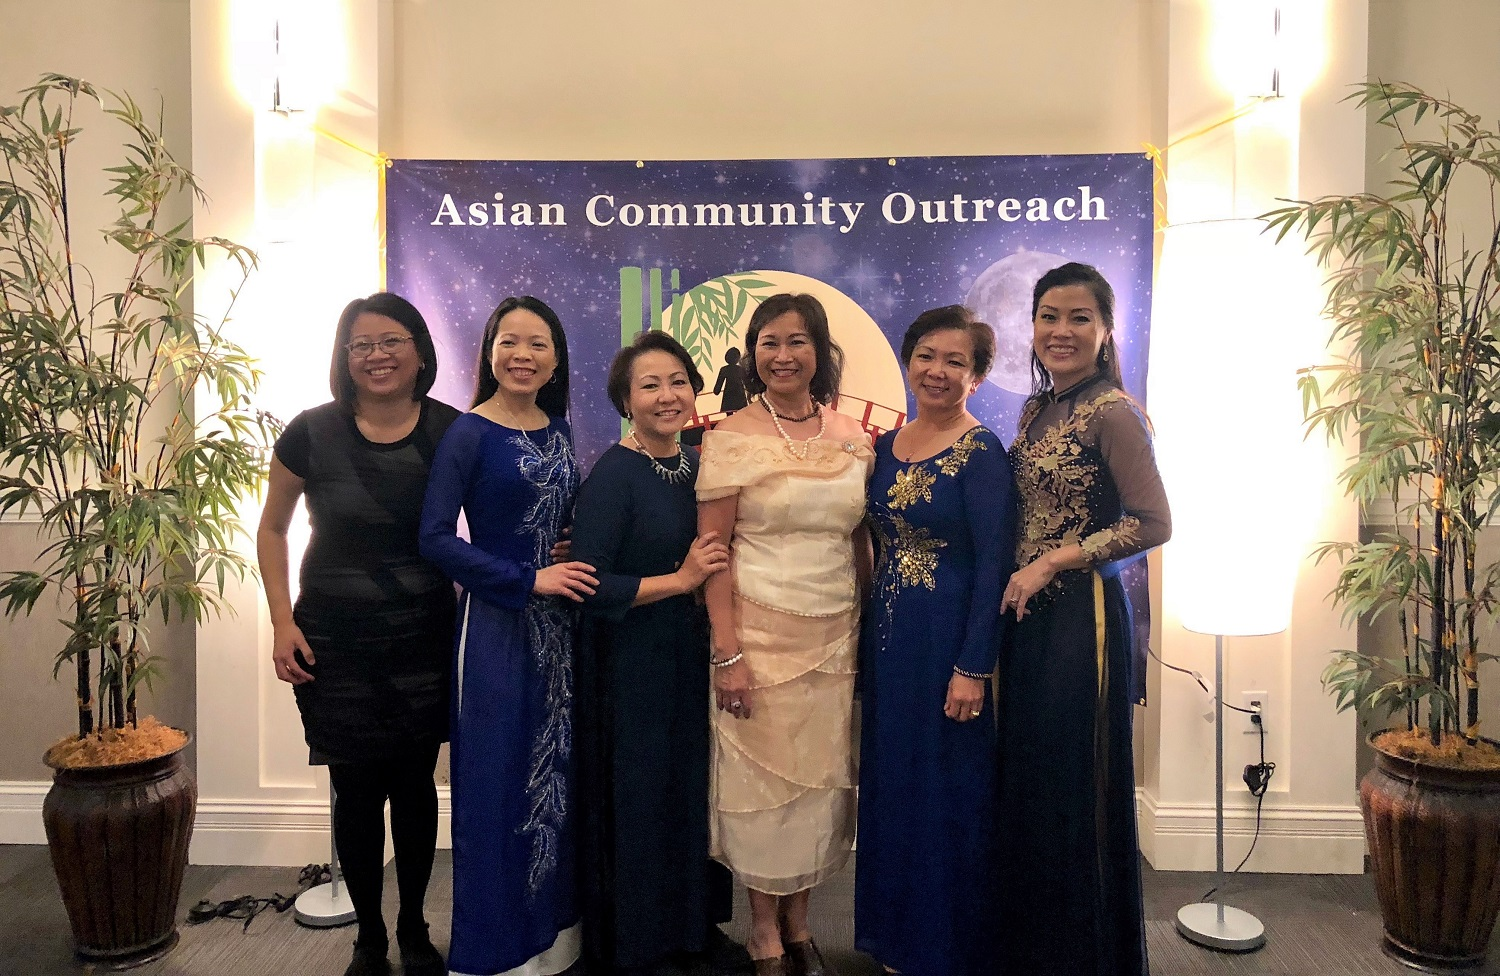 Crystal Bui, left, with Asian Community Outreach board members.